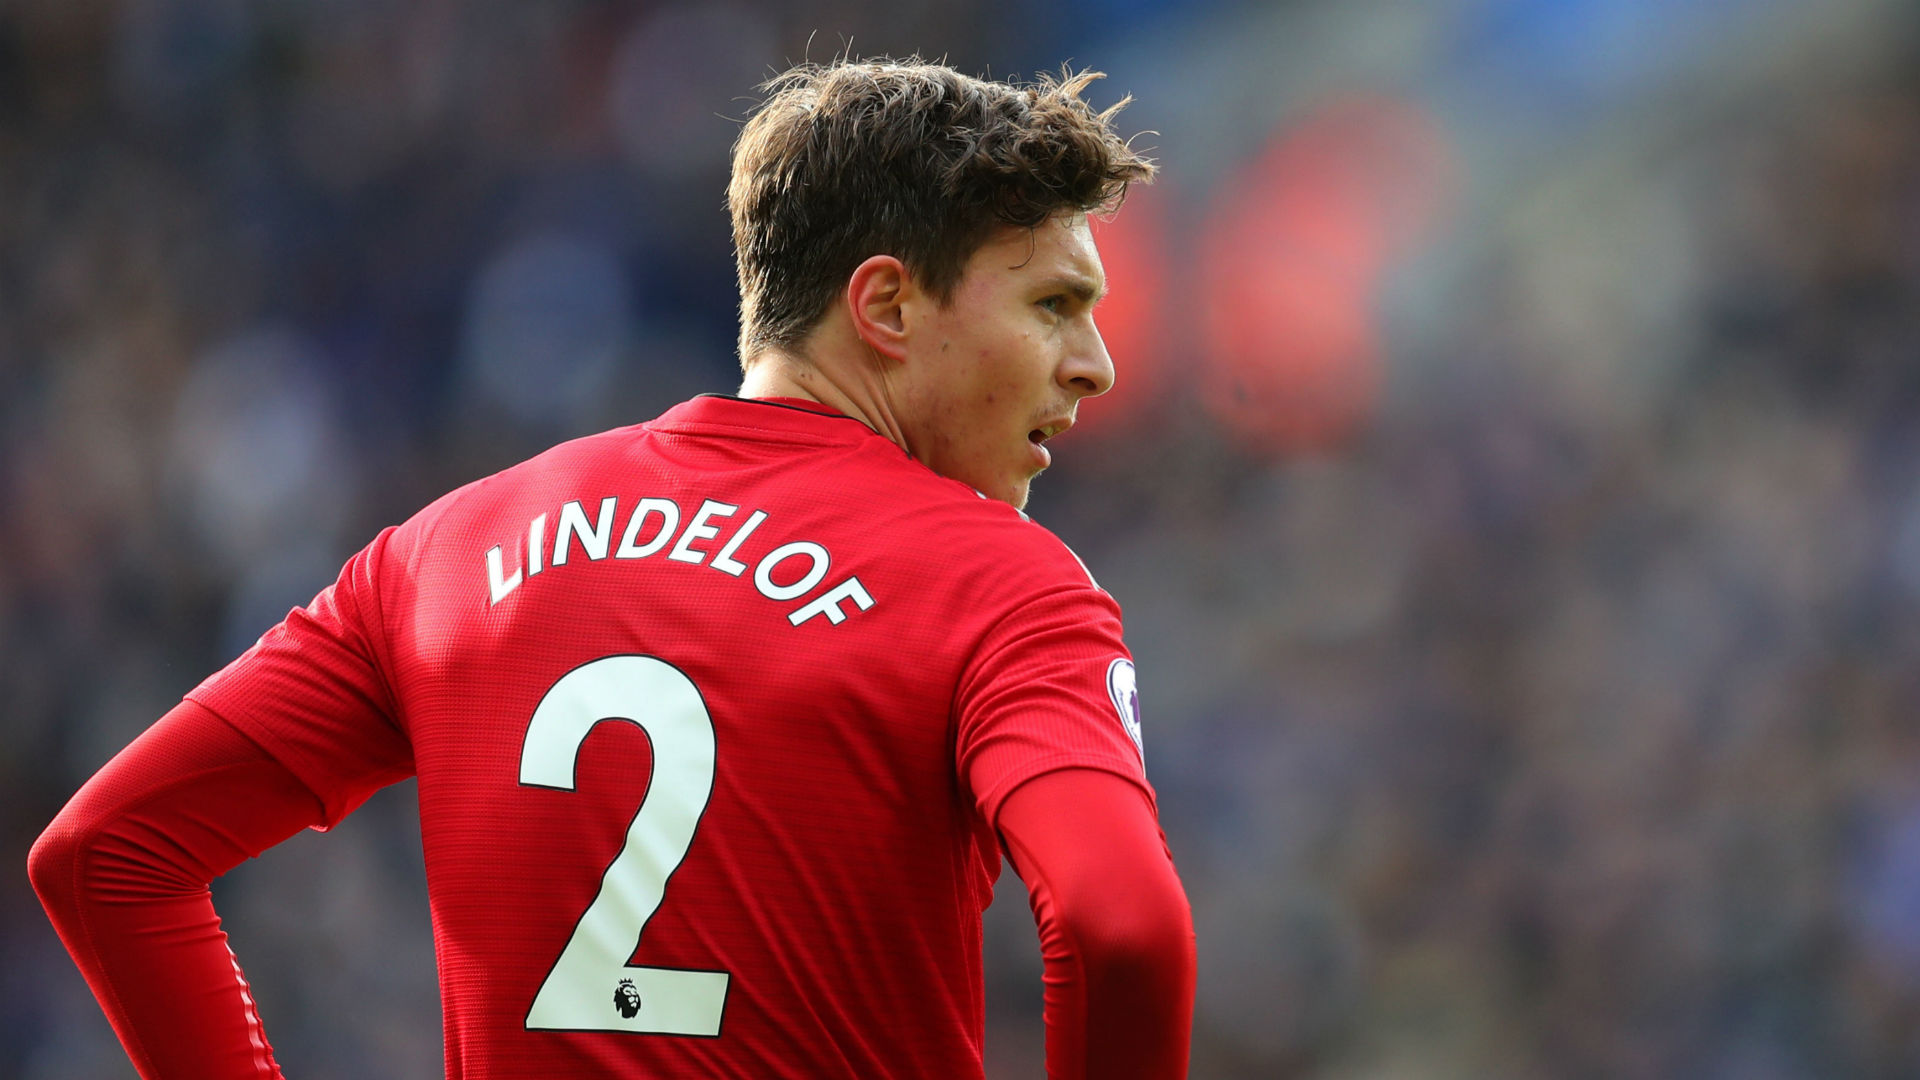 Lindelof looking forward to welcoming fresh start and faces to Man Utd